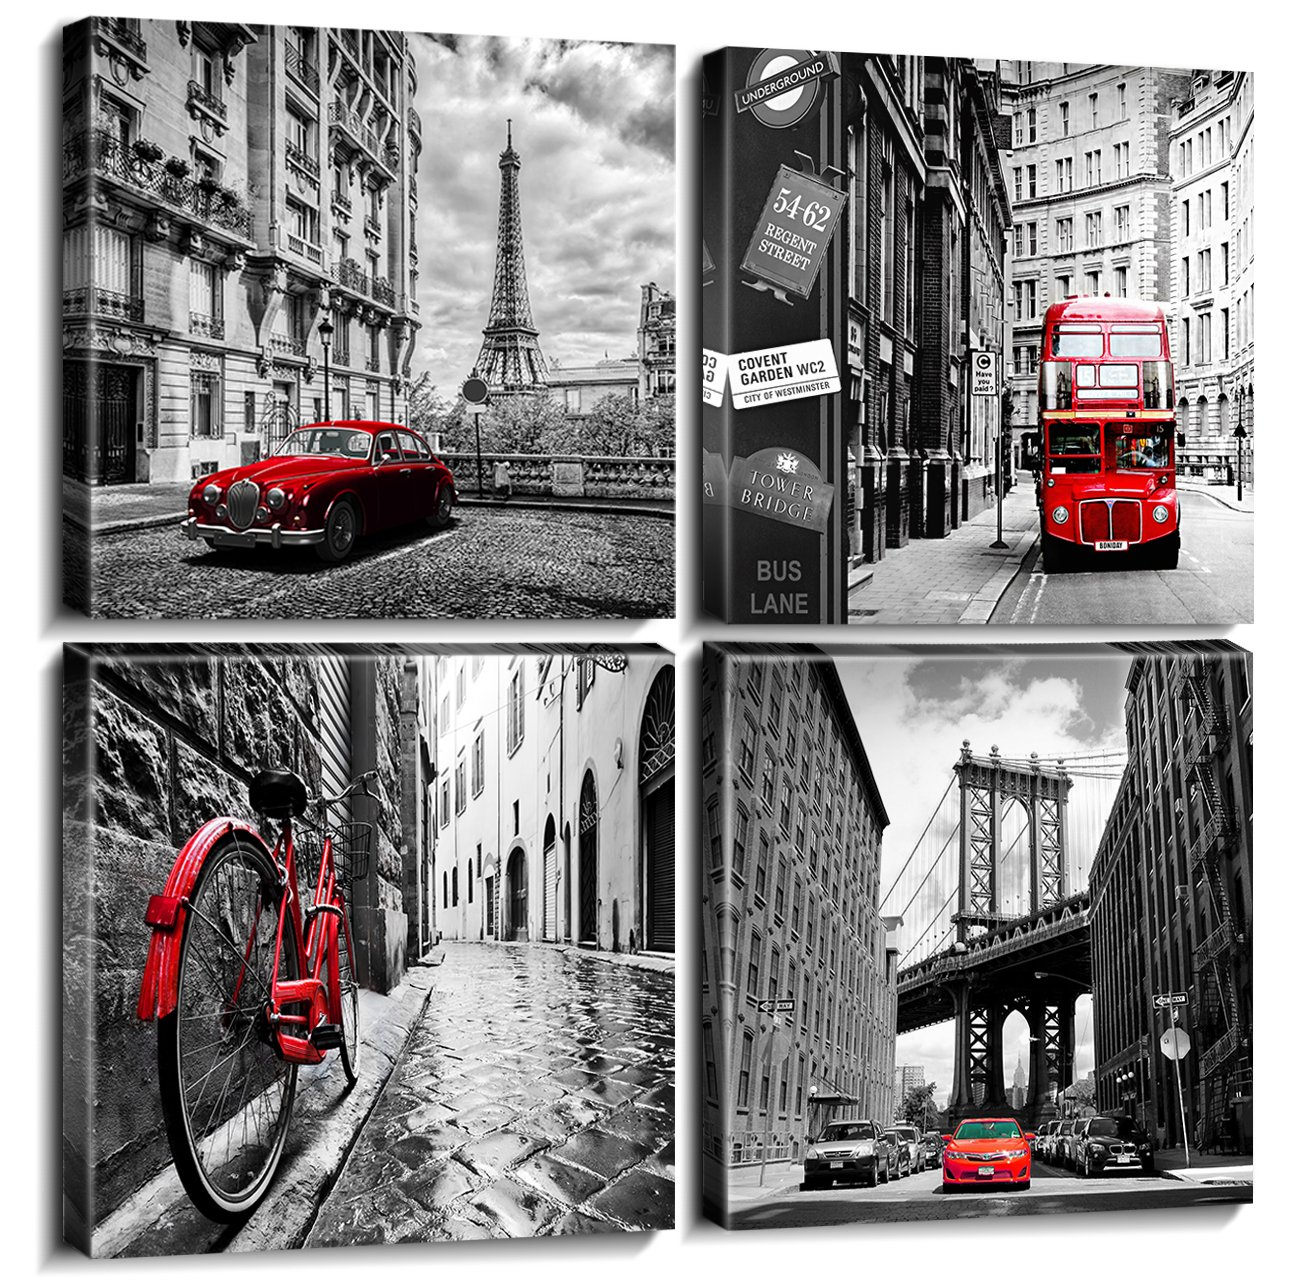 Wall Art City Canvas Prints Decor Homes Decorations Black and White with Red Cars Buildings Picture Framed Modern Artwork for Office Living Room Paris Pictures Set of 4 Piece 12'' X 12'' Each Panel